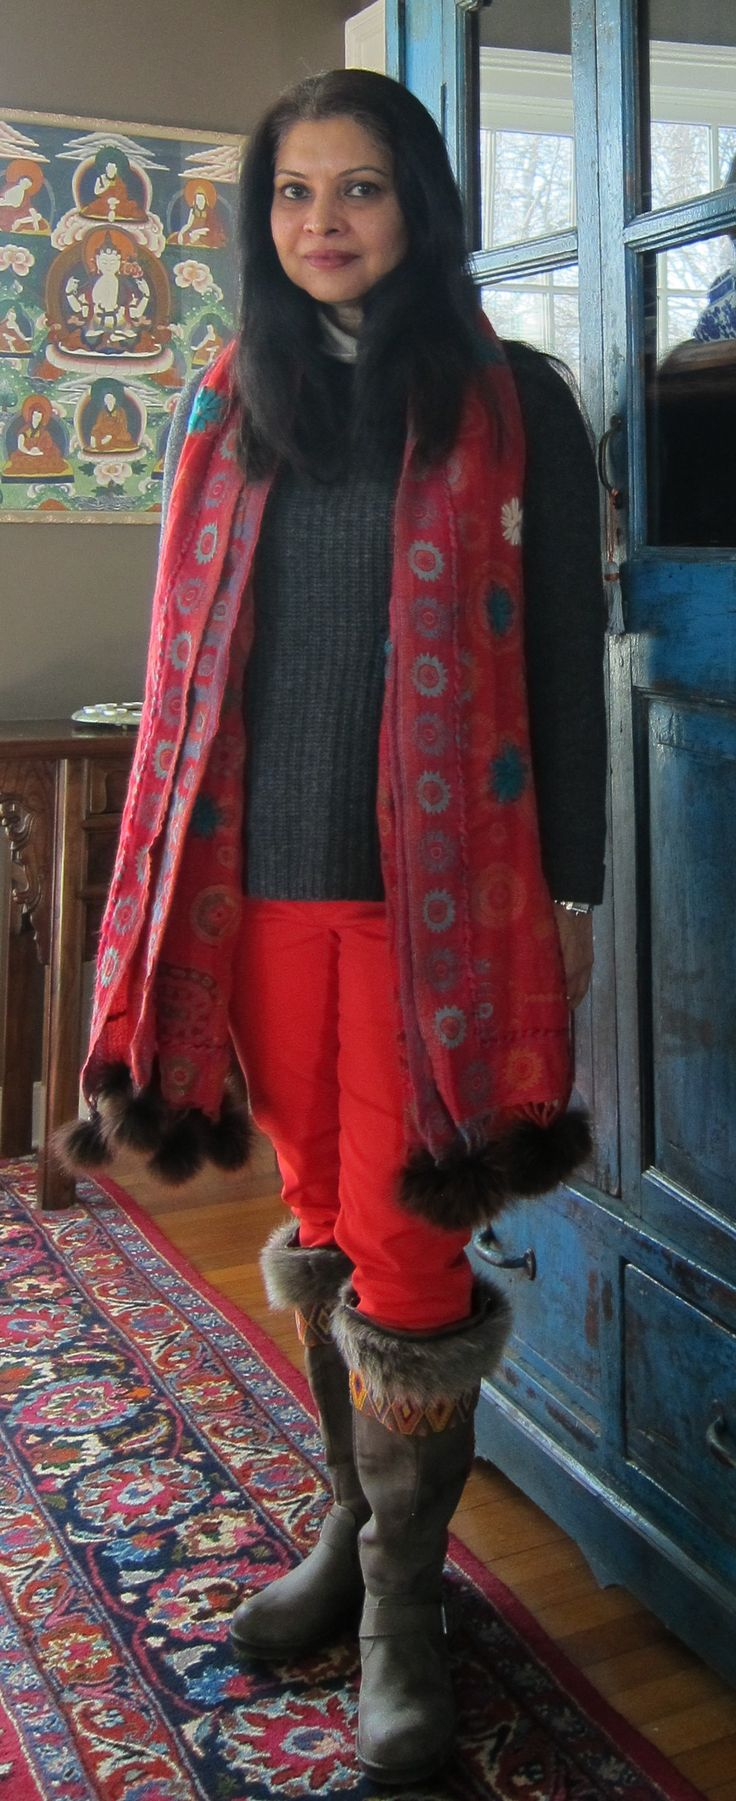 J. Crew wool sweater, Uniqlo fleece top, Gap pants, fur trimmed boots boots and fur trimmed wool wrap from India - 2018